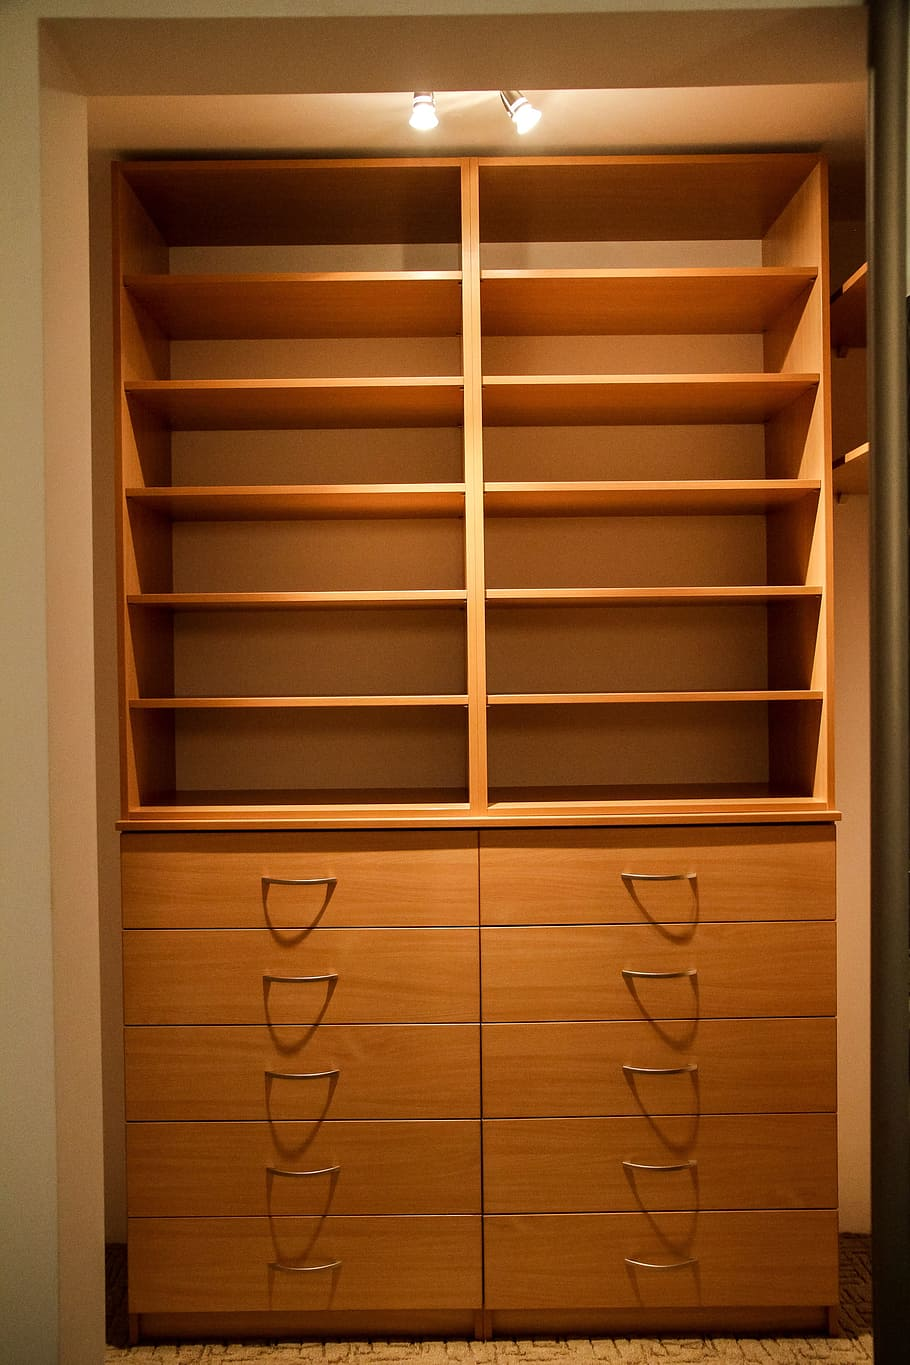 A simple armoire manufactured using hard maple consisting of shelves and drawer units underneath.